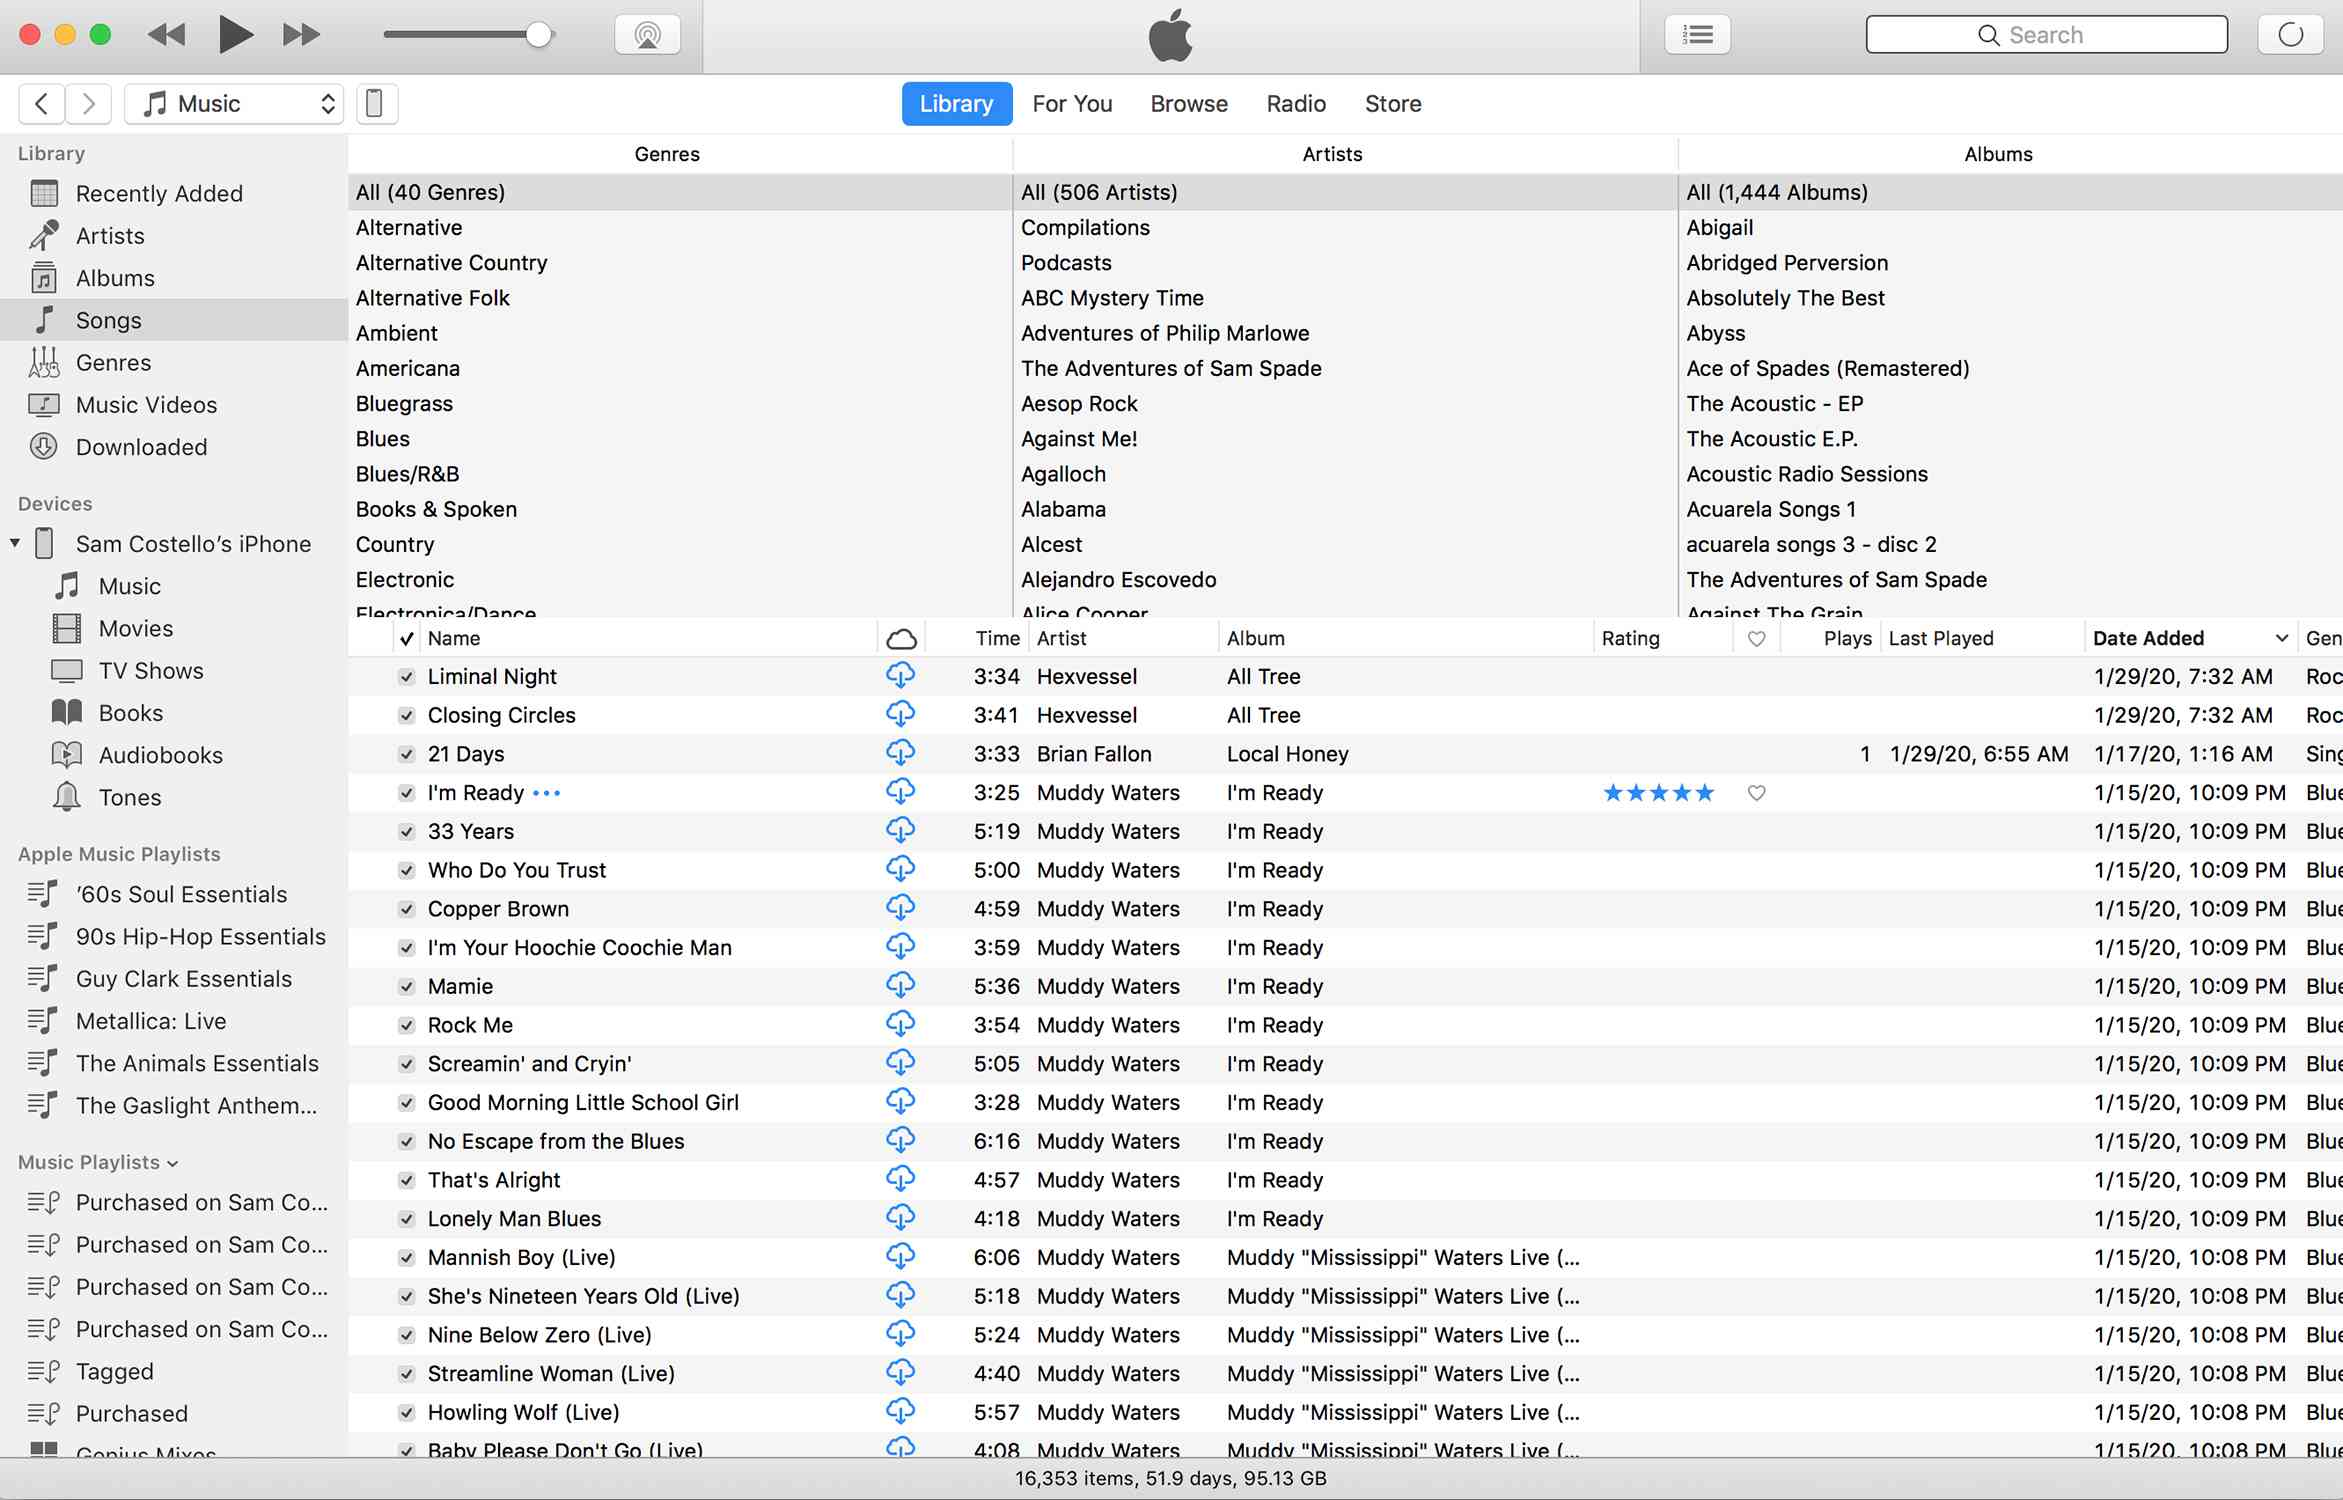 Screenshot of iTunes showing a star rating for a song